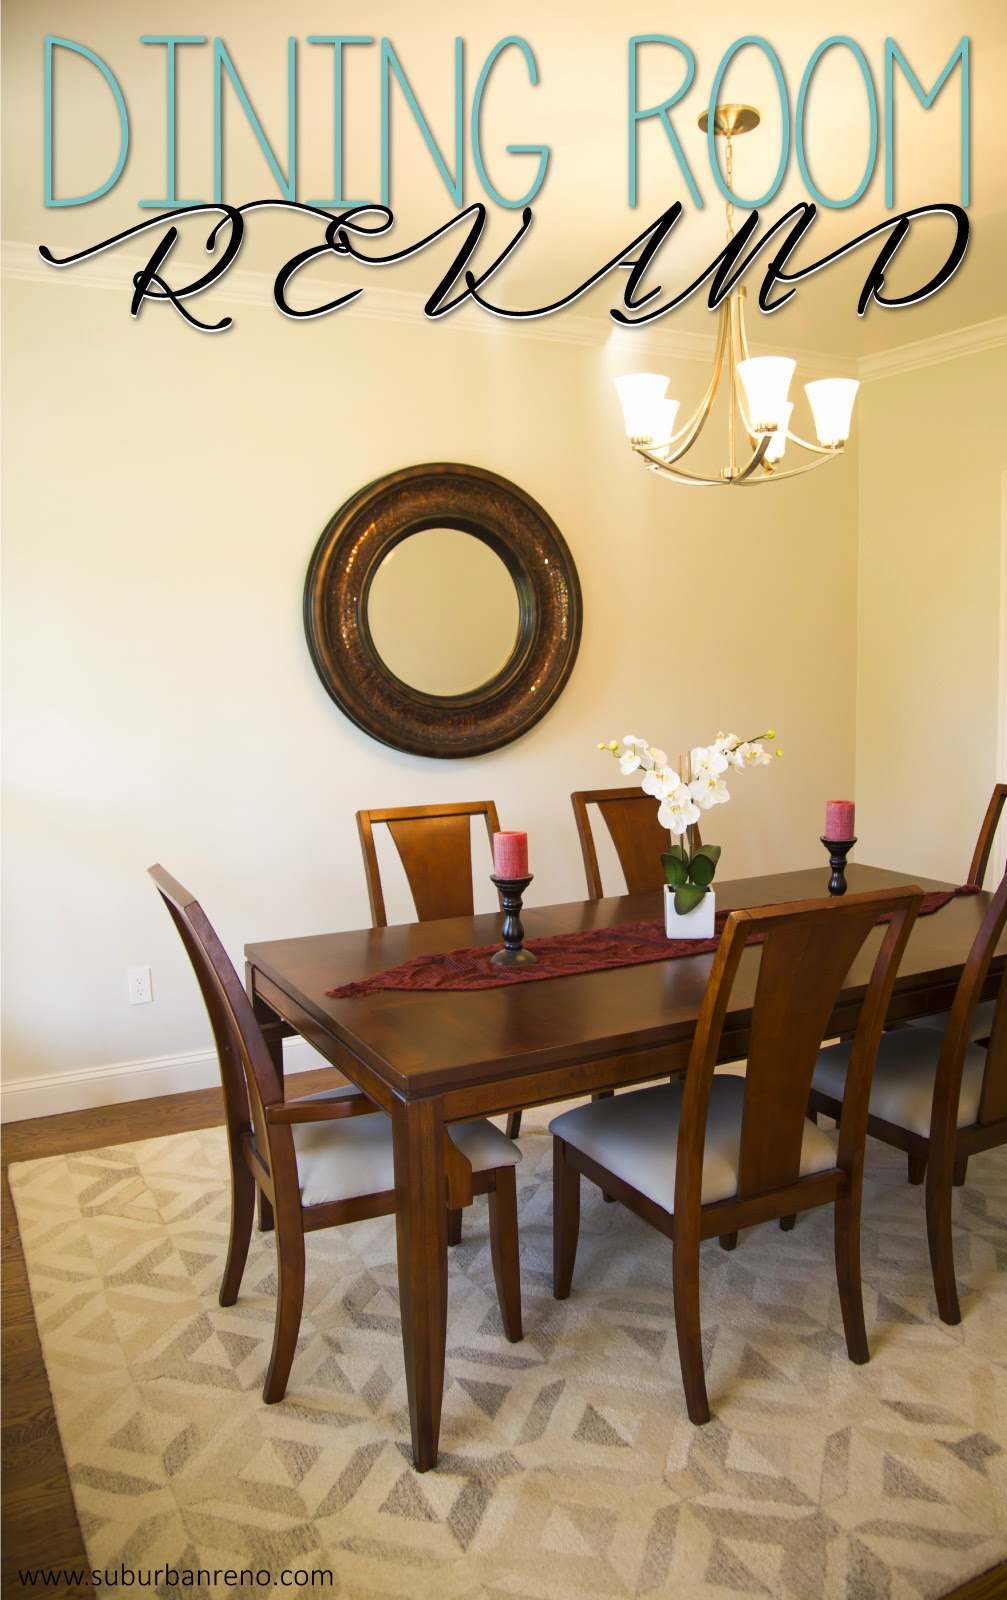 Dining Room Revamp